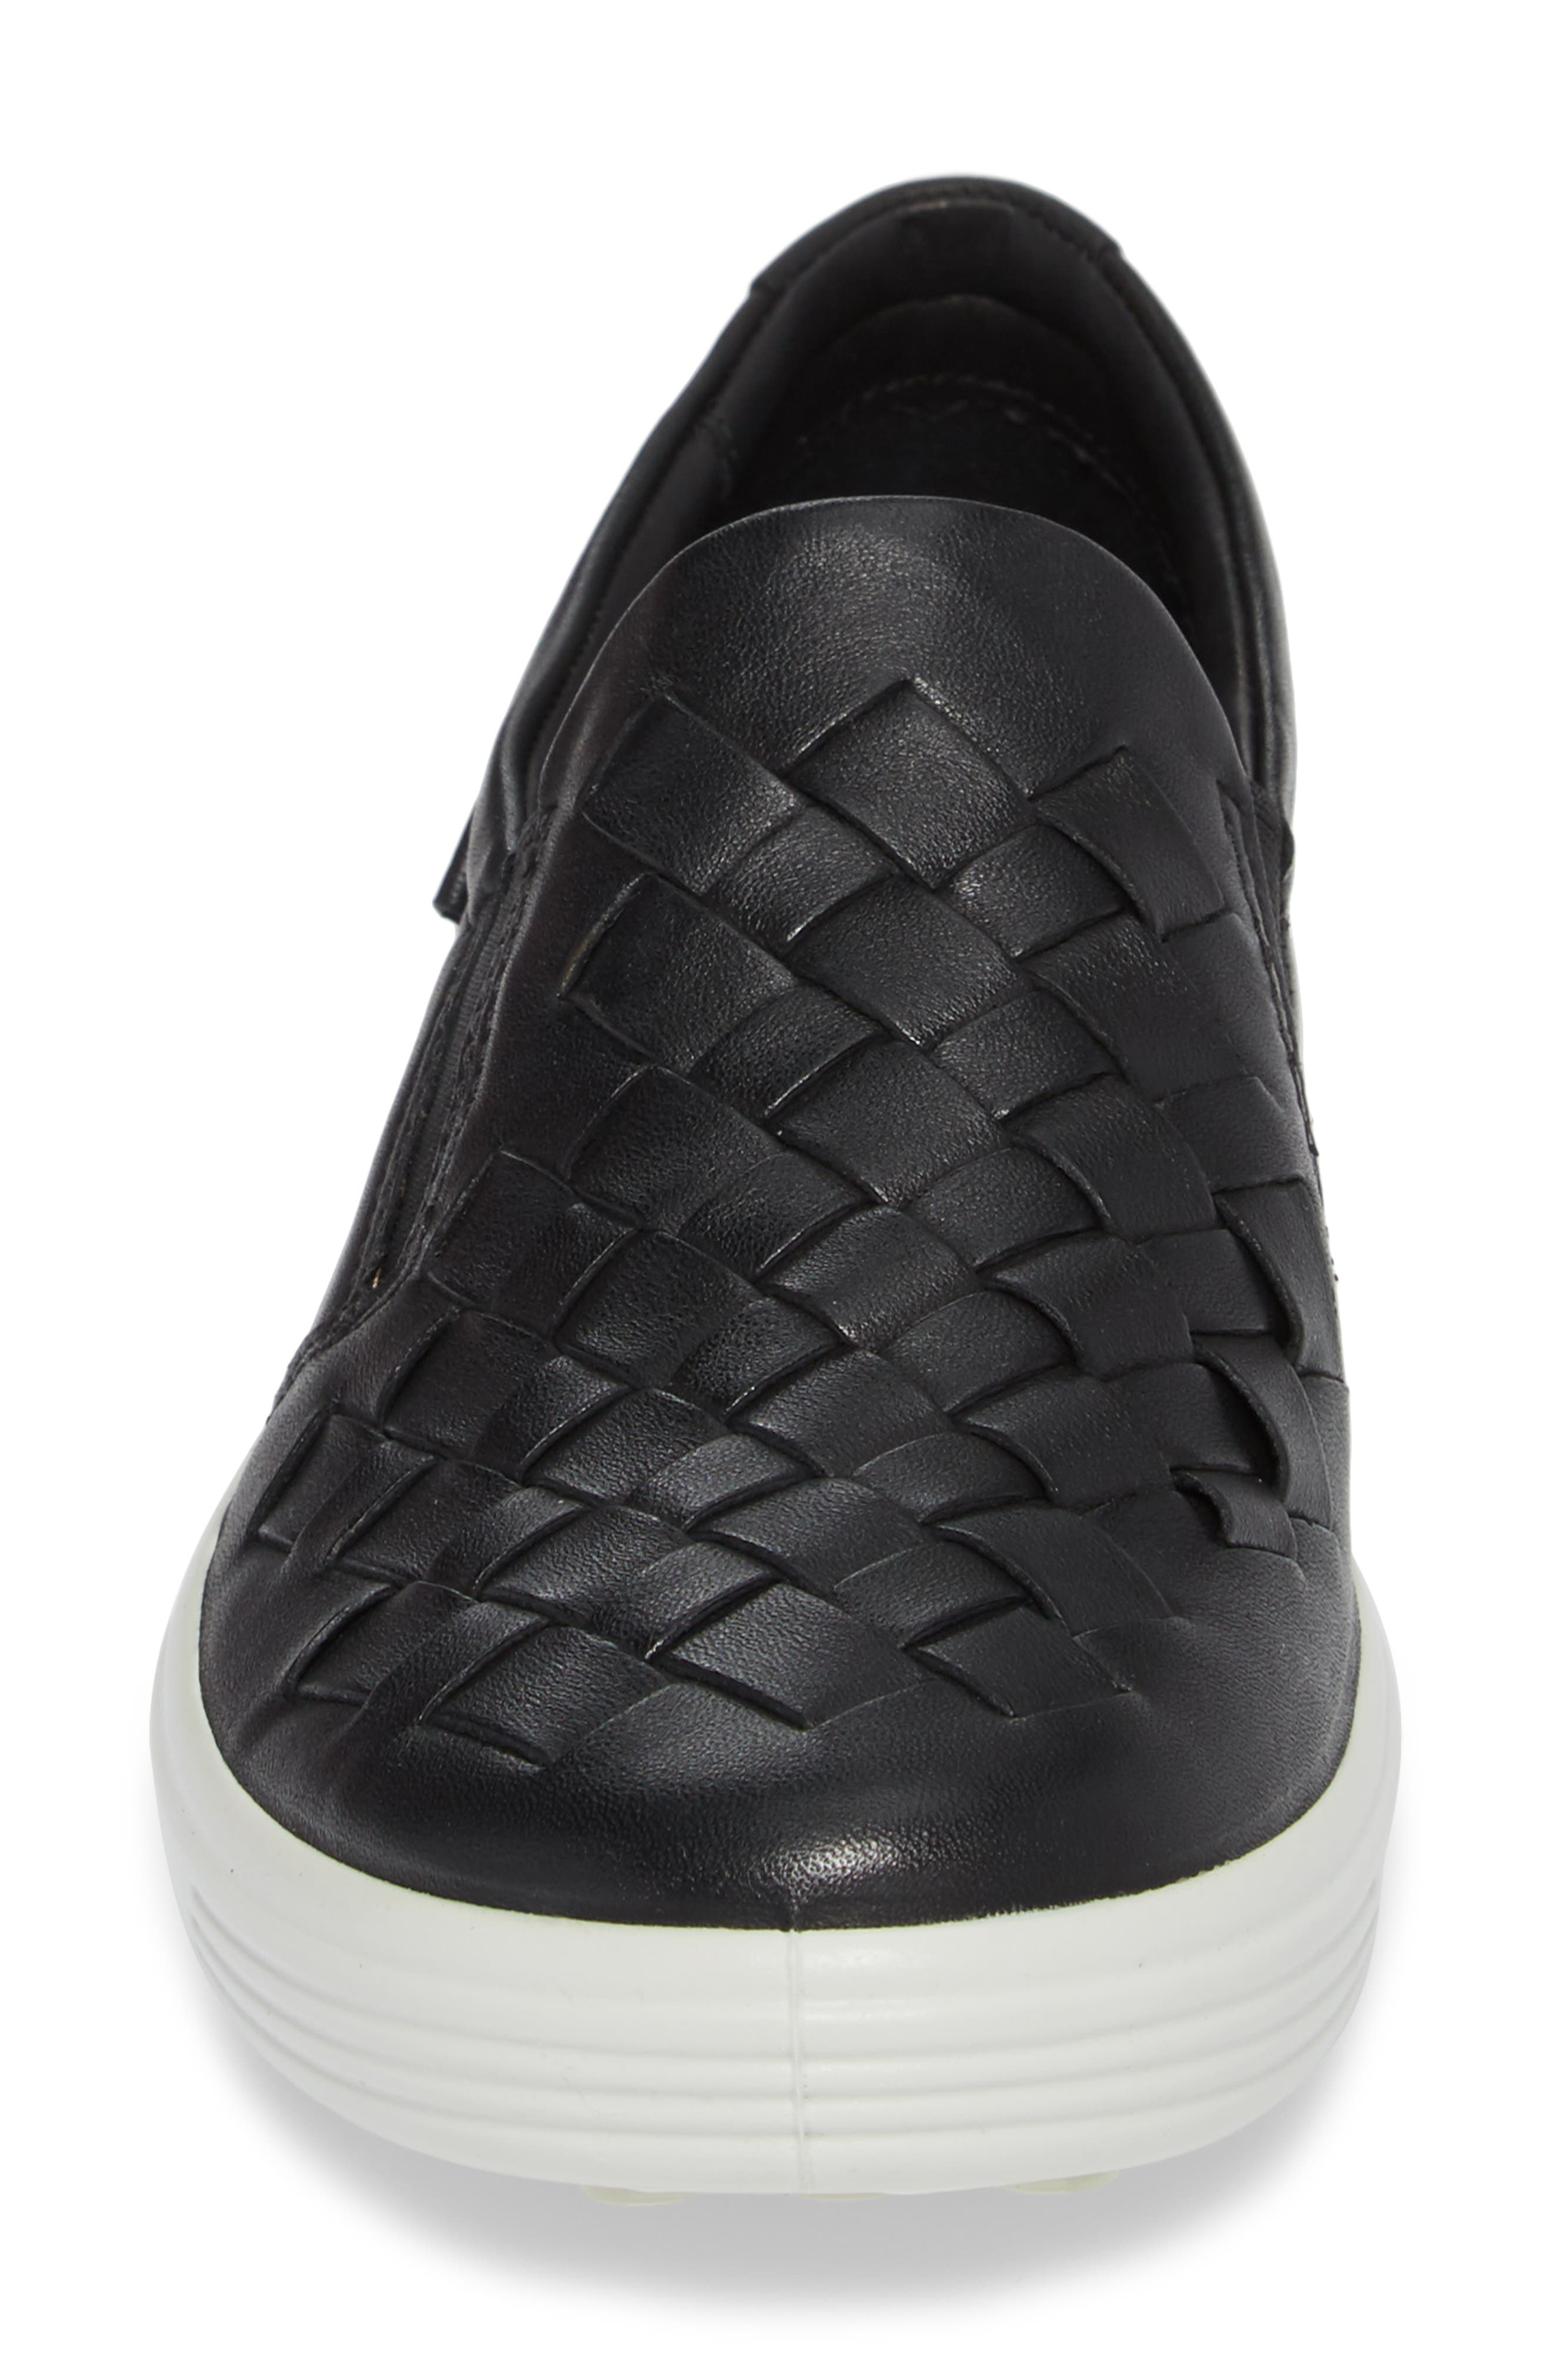 ECO Soft 7 Woven Slip-On Sneaker,                             Alternate thumbnail 4, color,                             BLACK LEATHER